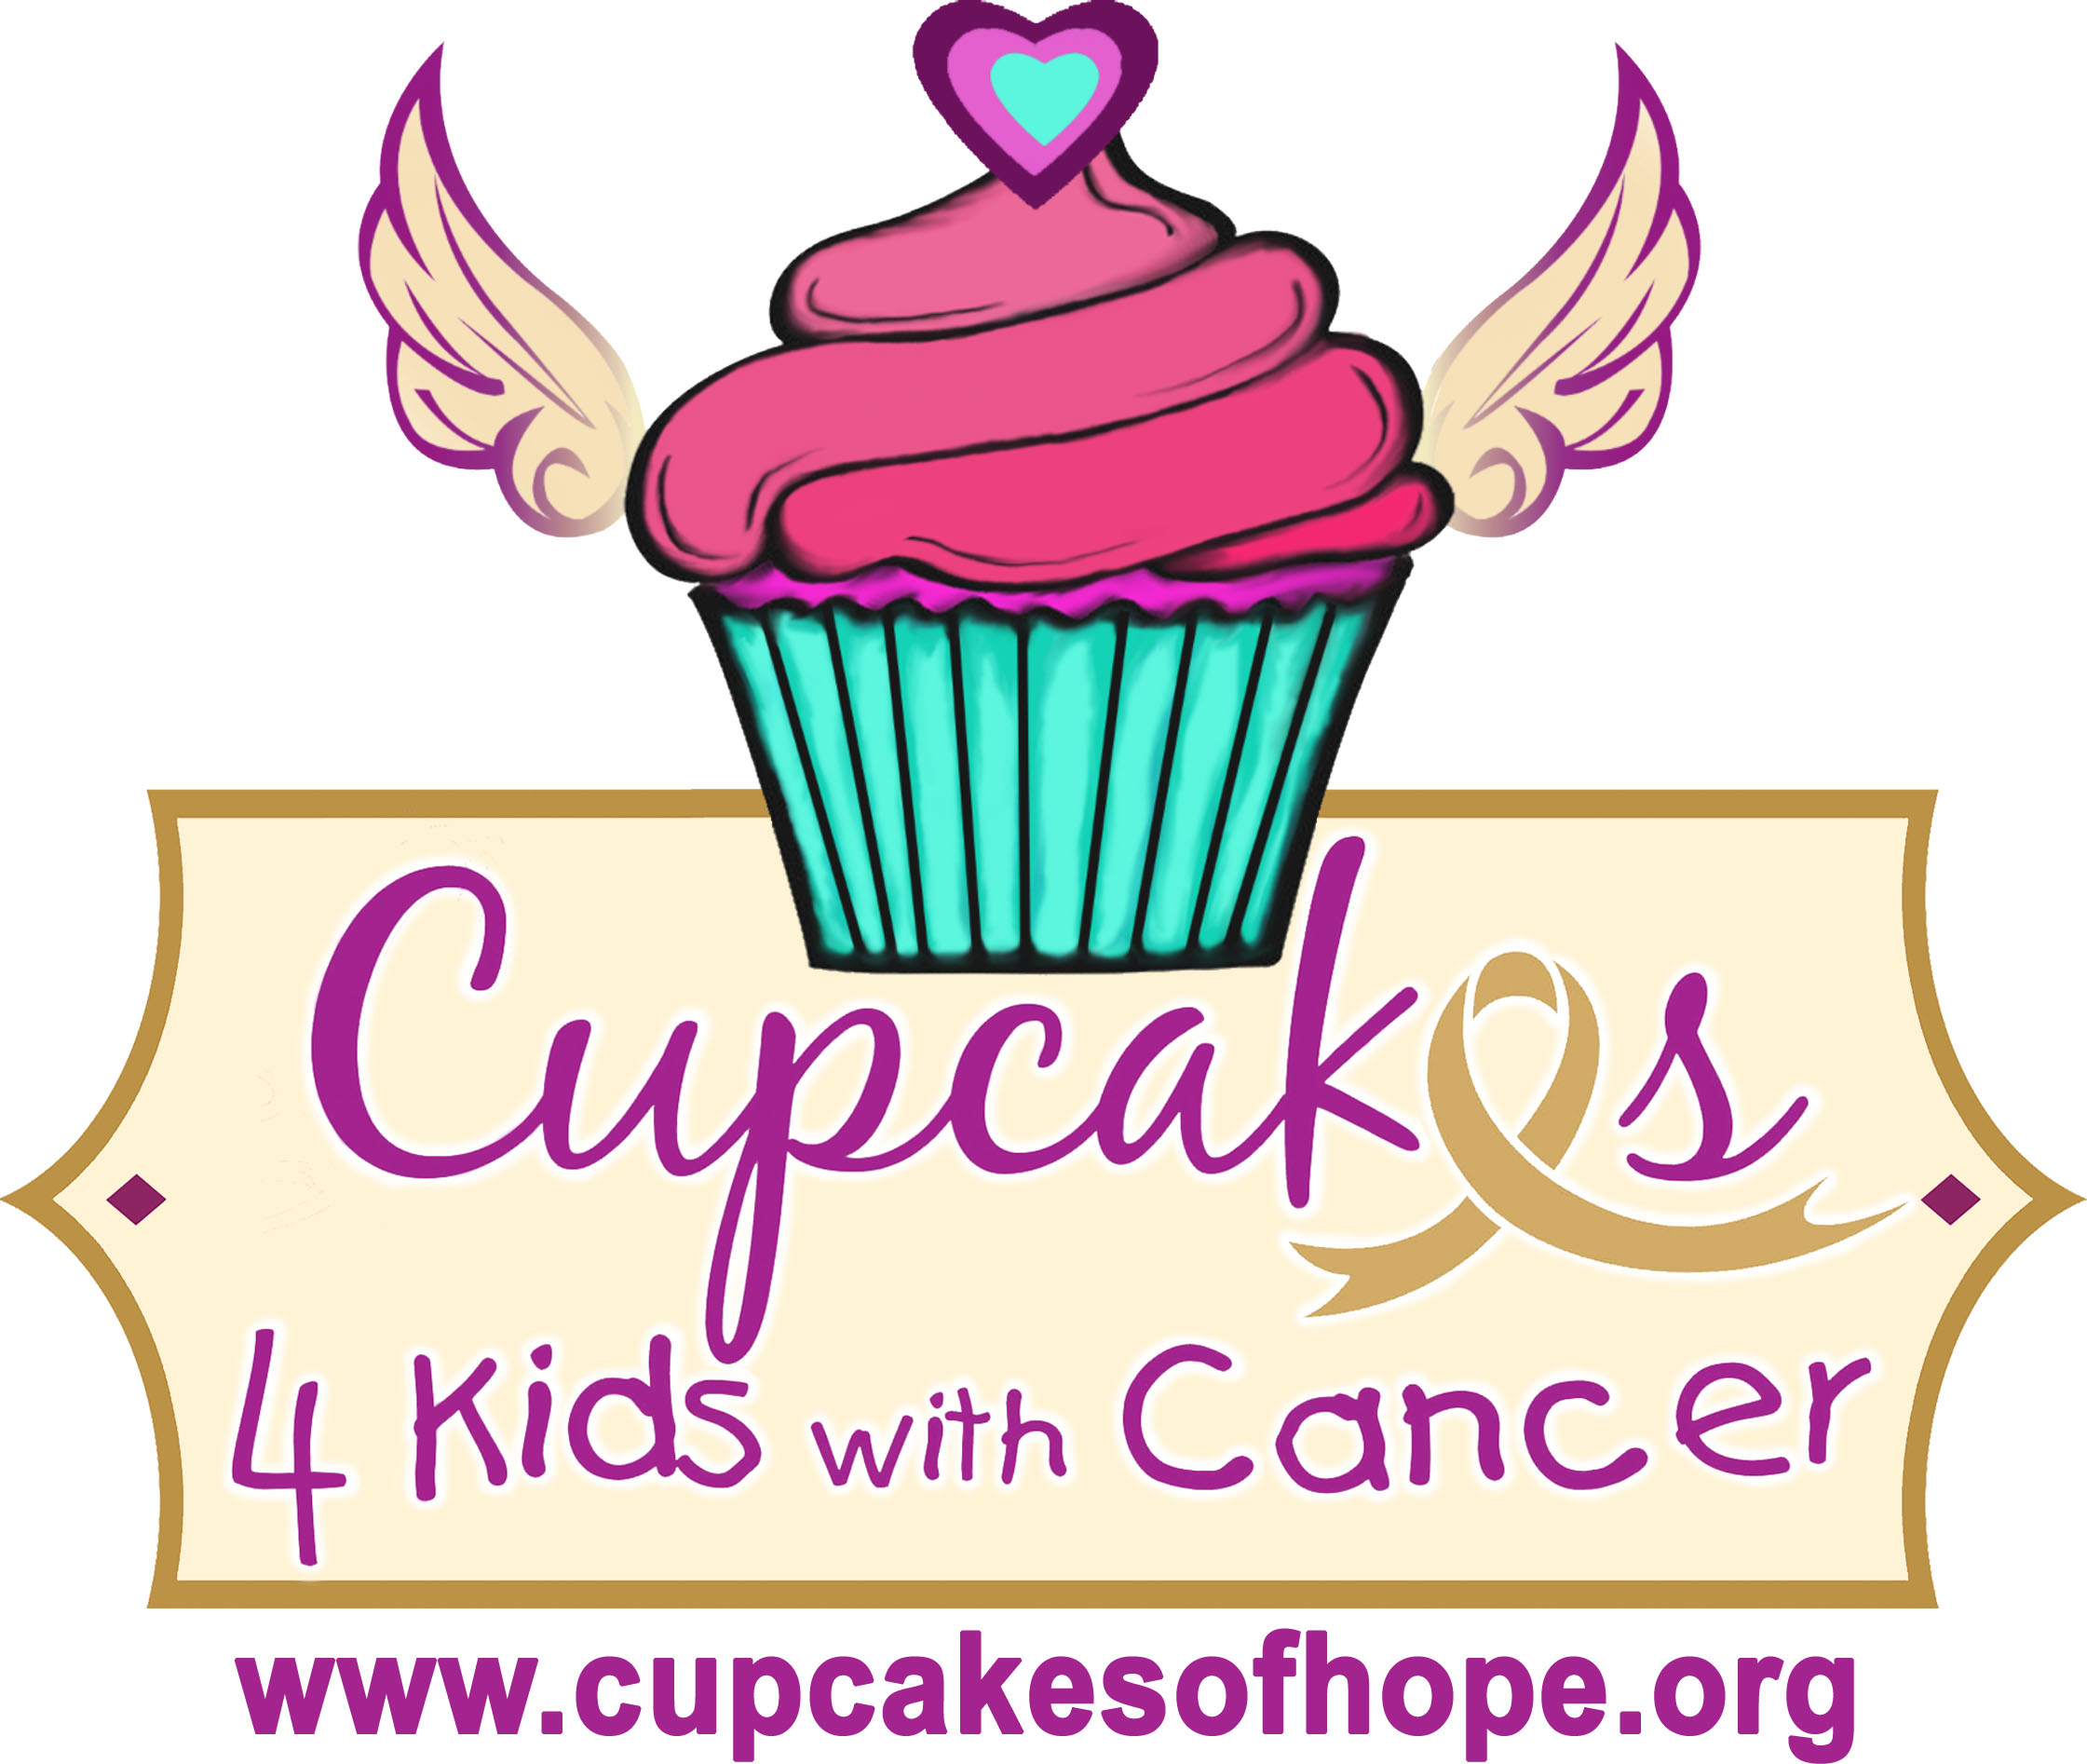 Cupcake Valentines Business Drive for Kids with Cancer